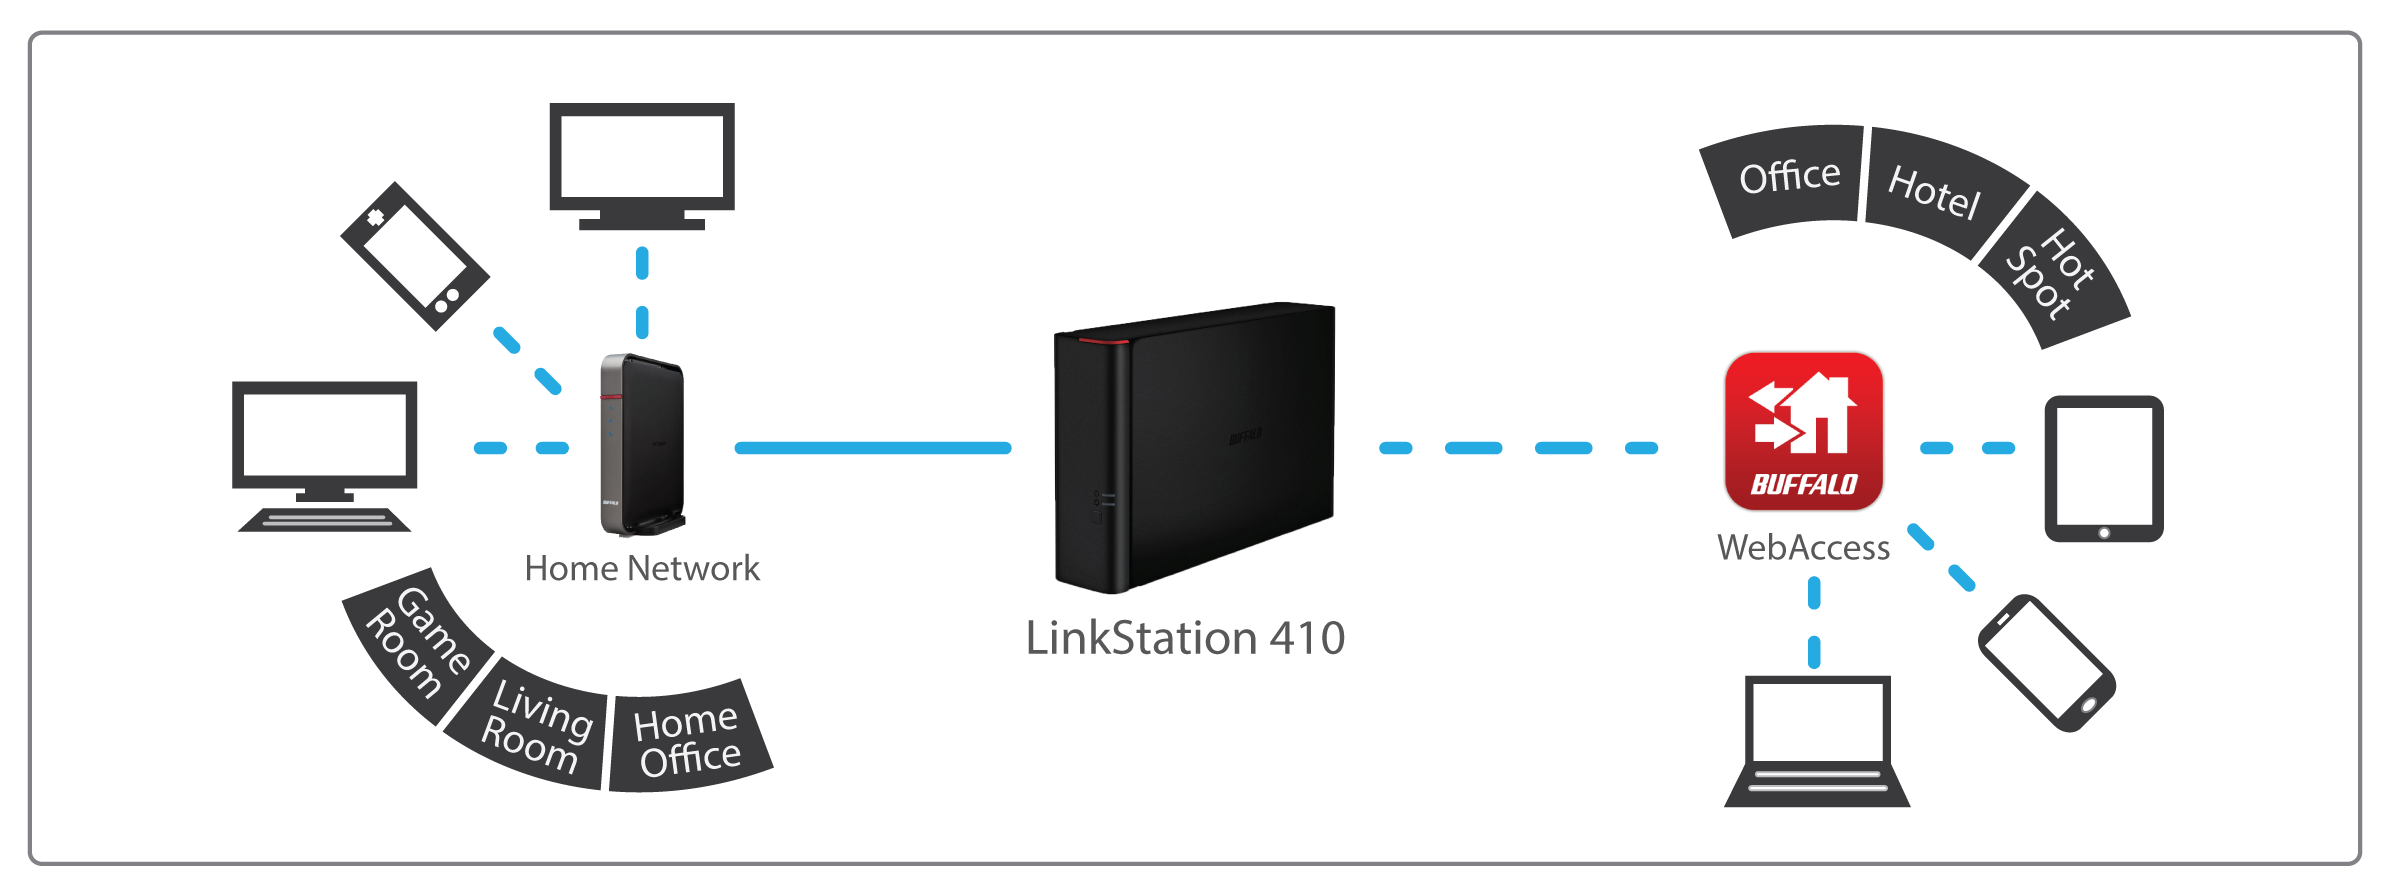 linkstation 400 secure central storage